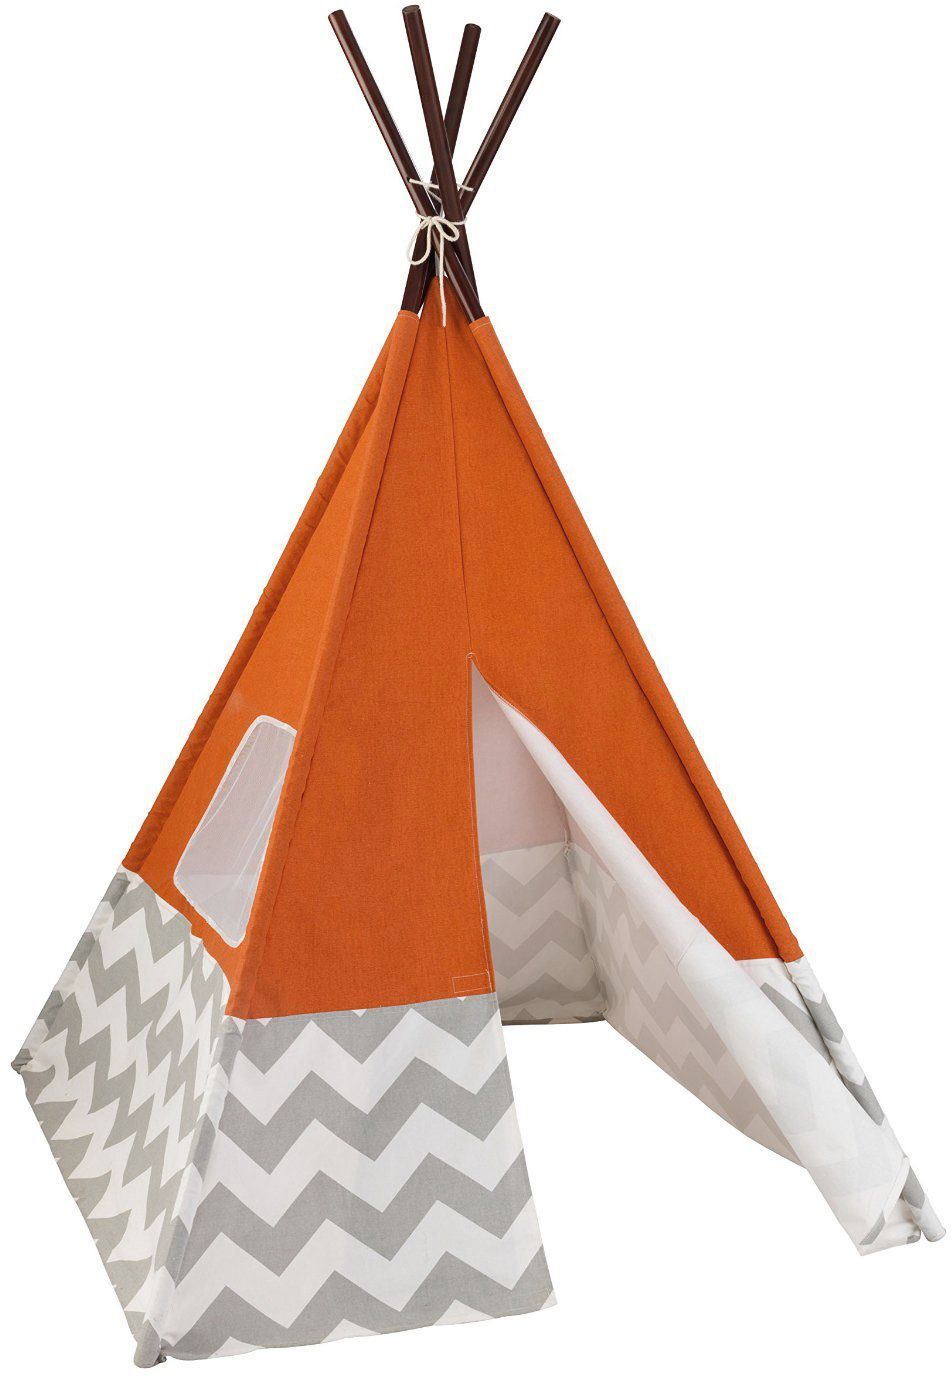 tipi enfant en toile et bambou orange. Black Bedroom Furniture Sets. Home Design Ideas